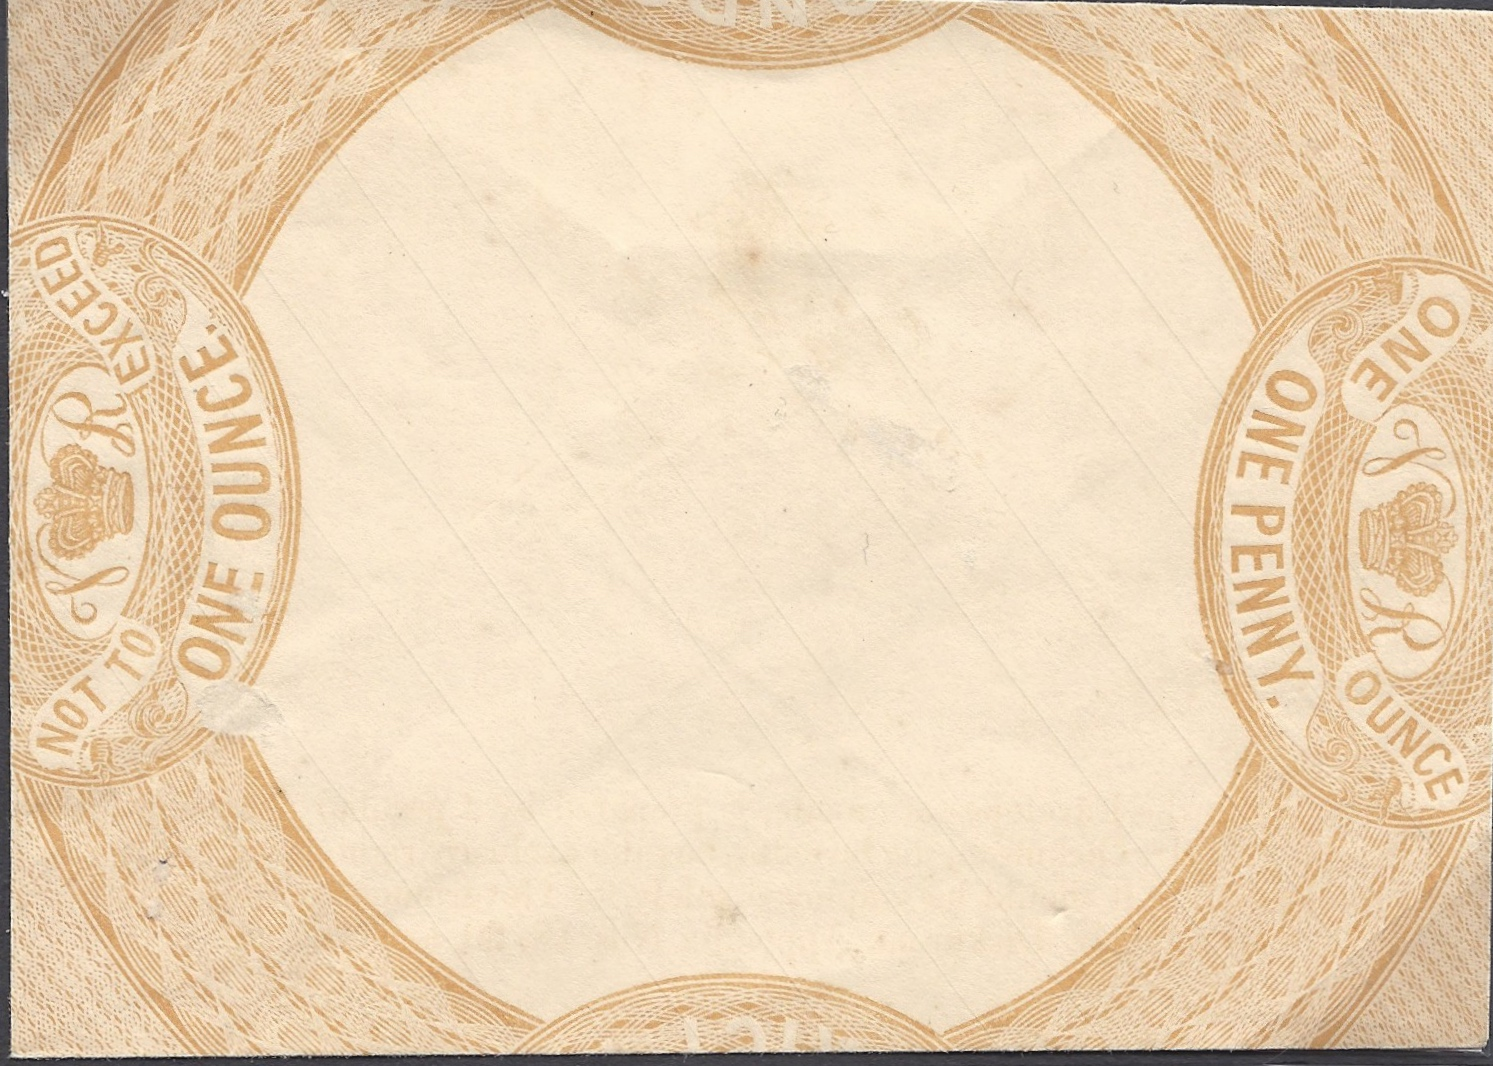 martin townsend 1837 dickinson s 1d envelope essay in yellow buff a fine example but small faults